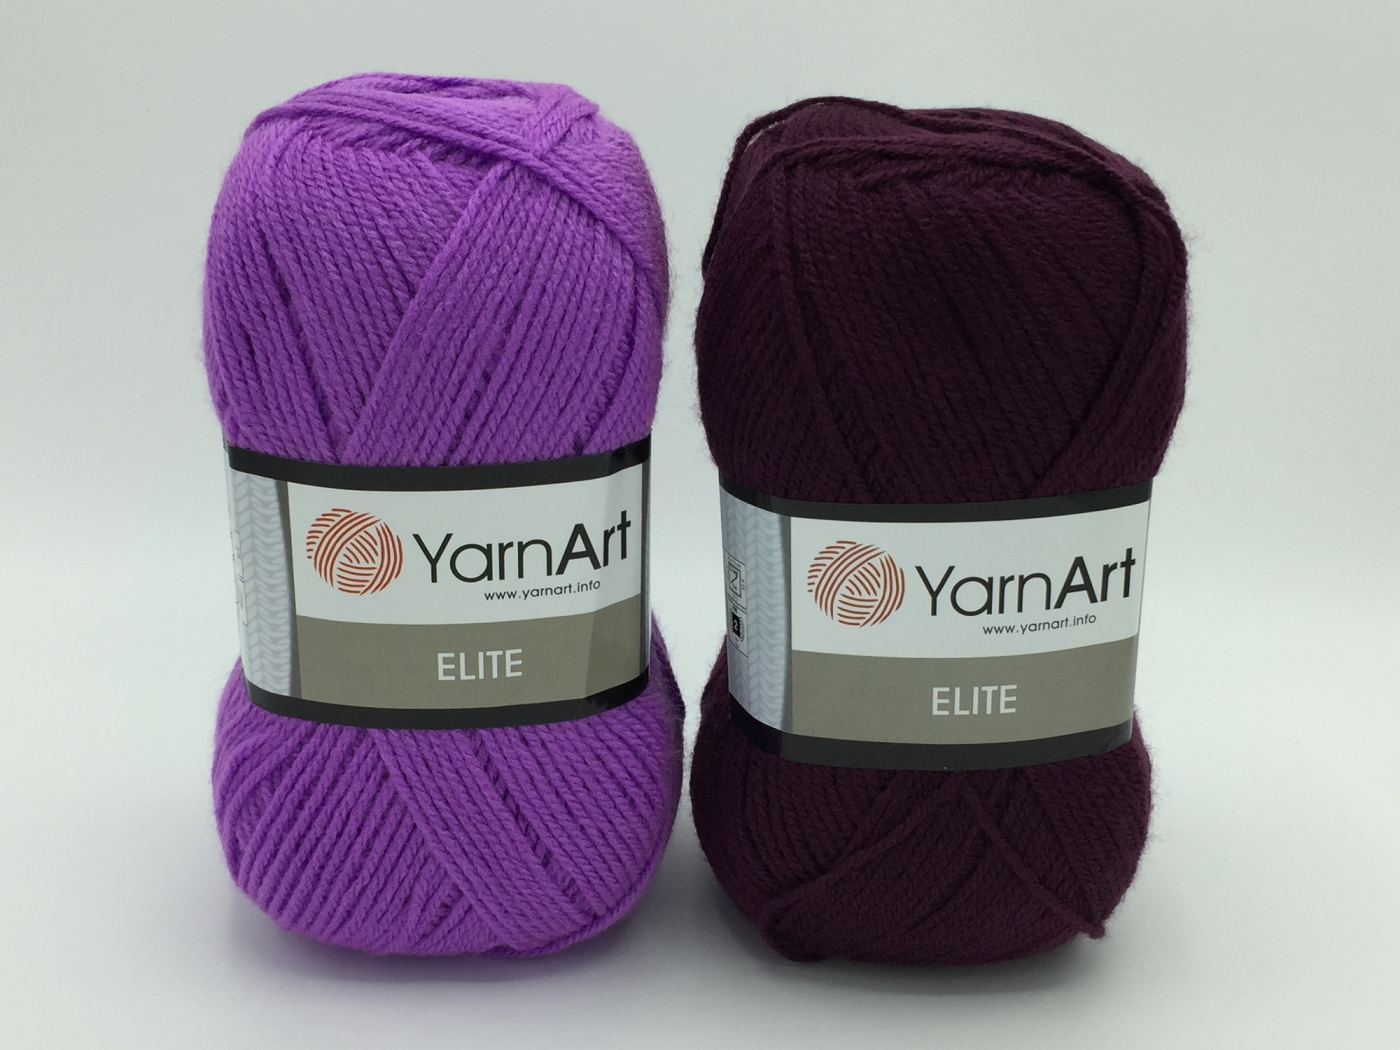 Fire tricotat - ELITE - Mov - 49-75 - Yarn-Art